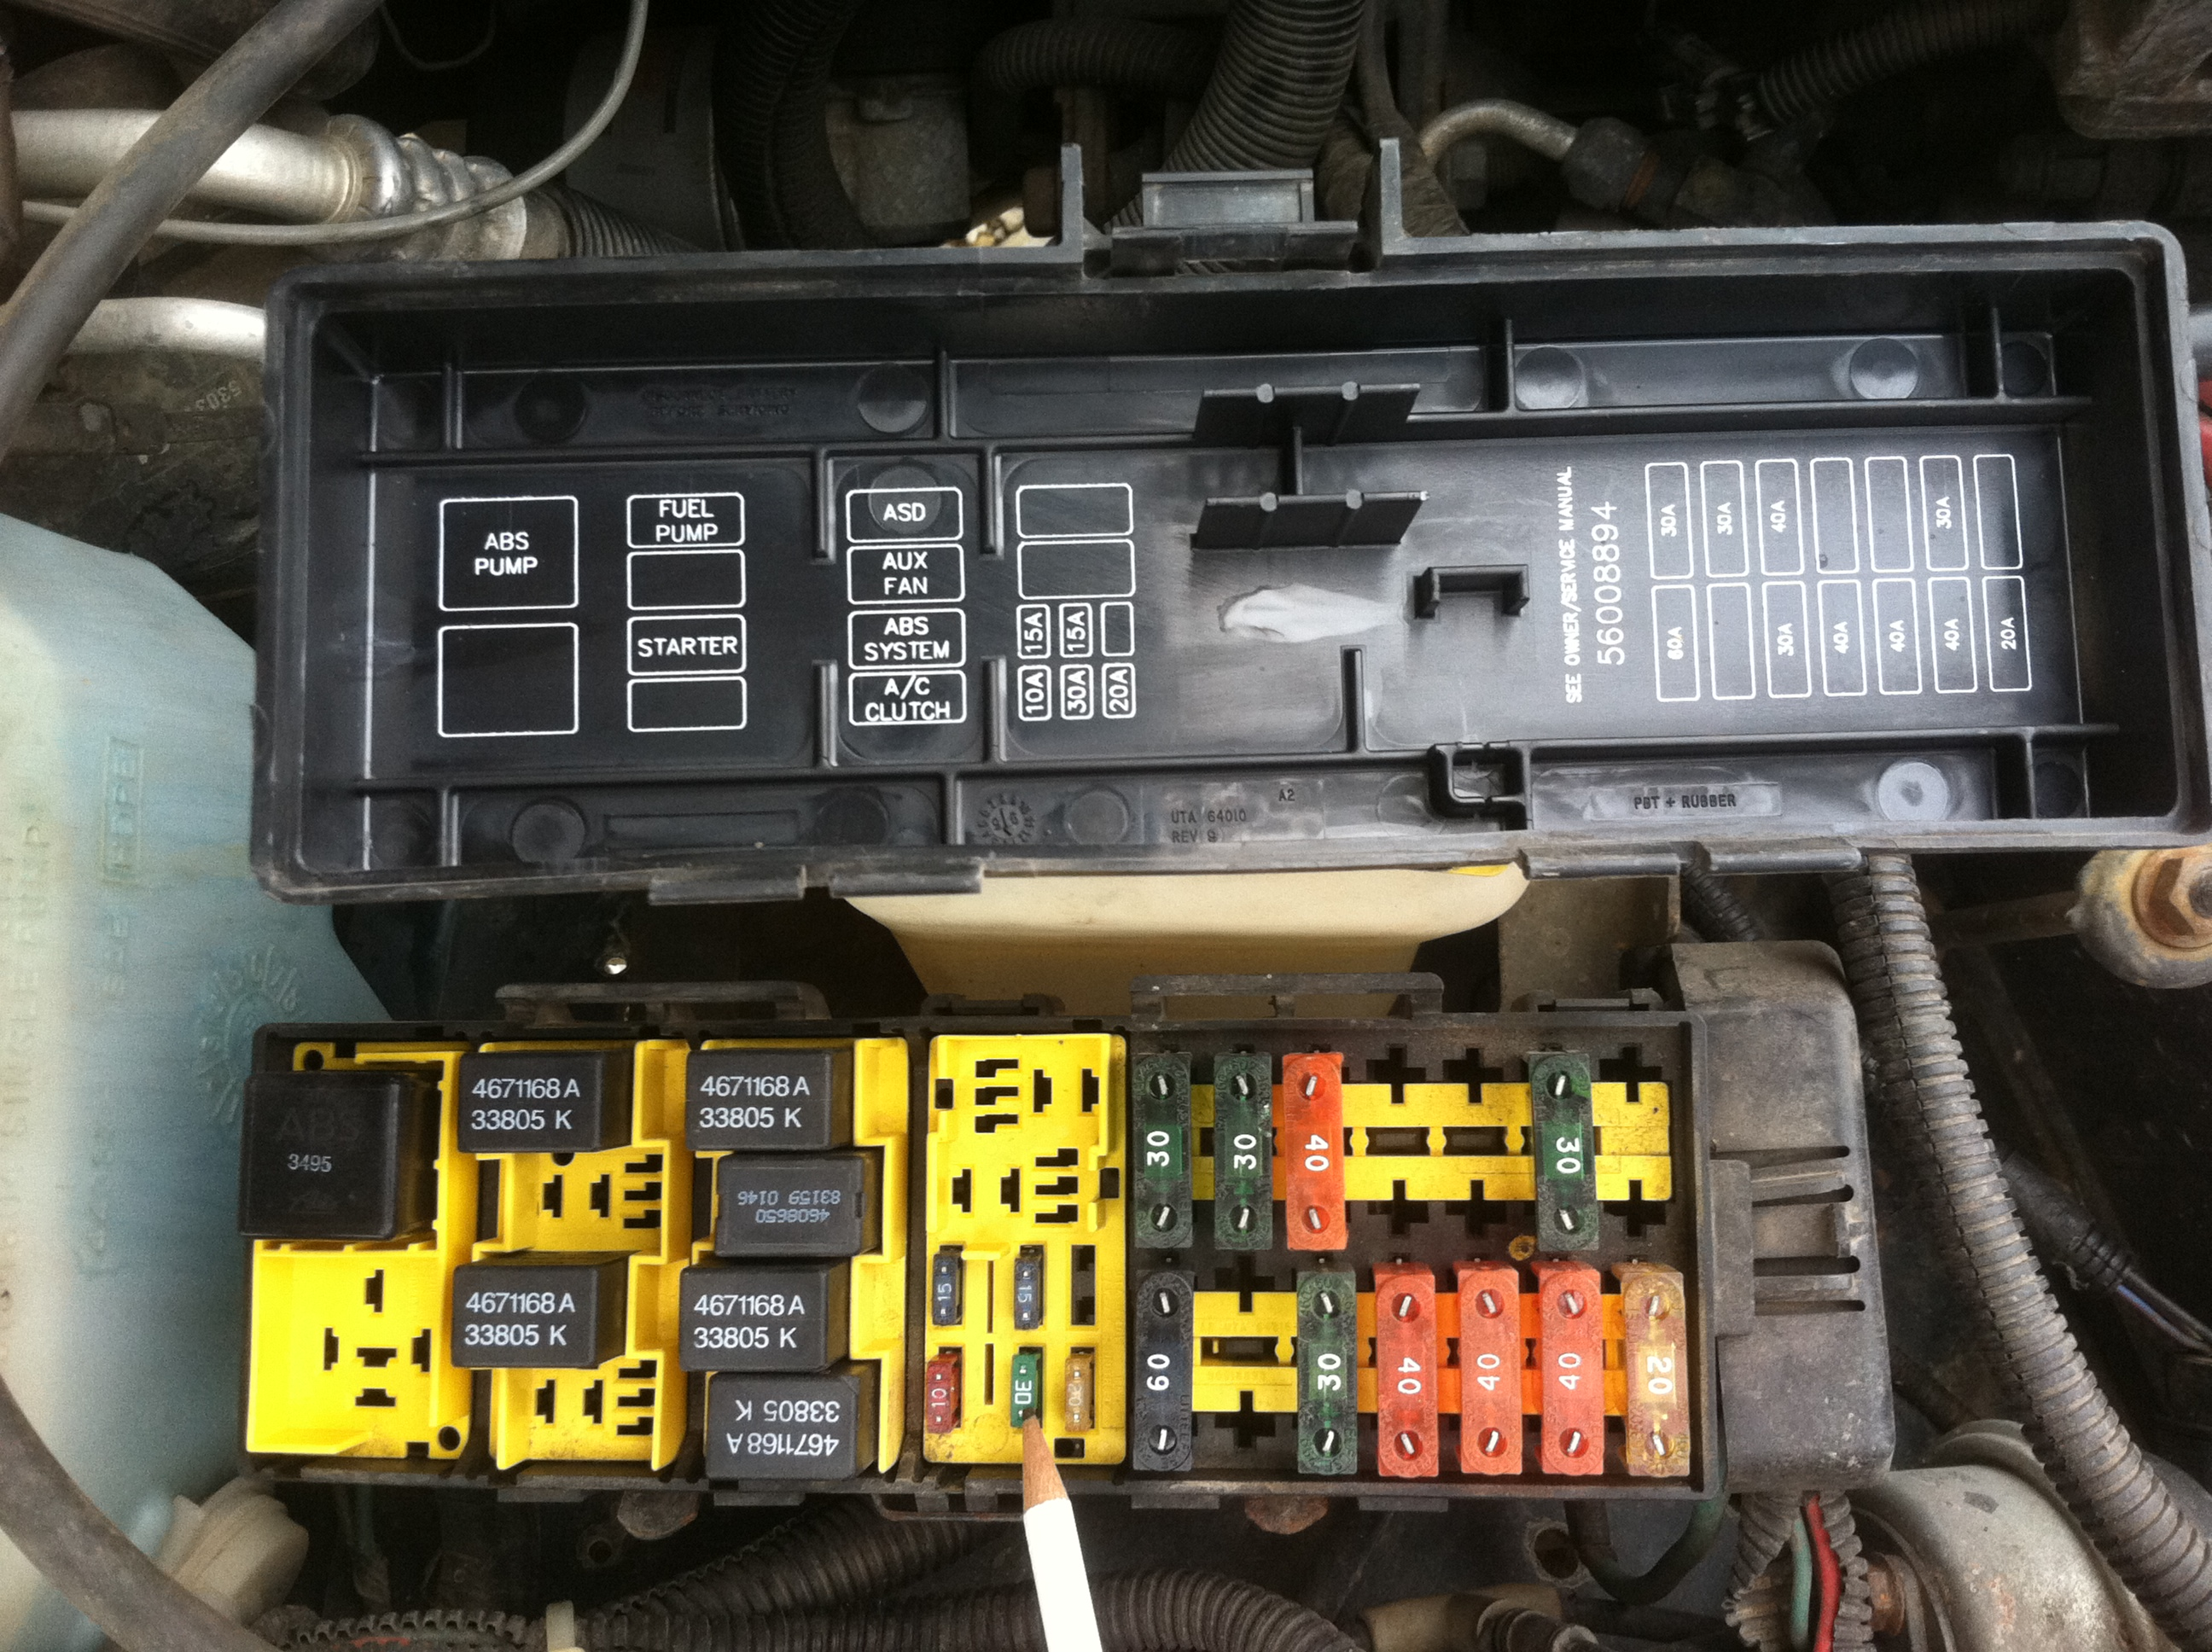 97 Jeep Cherokee Sport Fuse Box Diagram 39 Wiring Images 96 Ford Taurus 2012 03 26 165239 Picture I Have A 1996 Xj